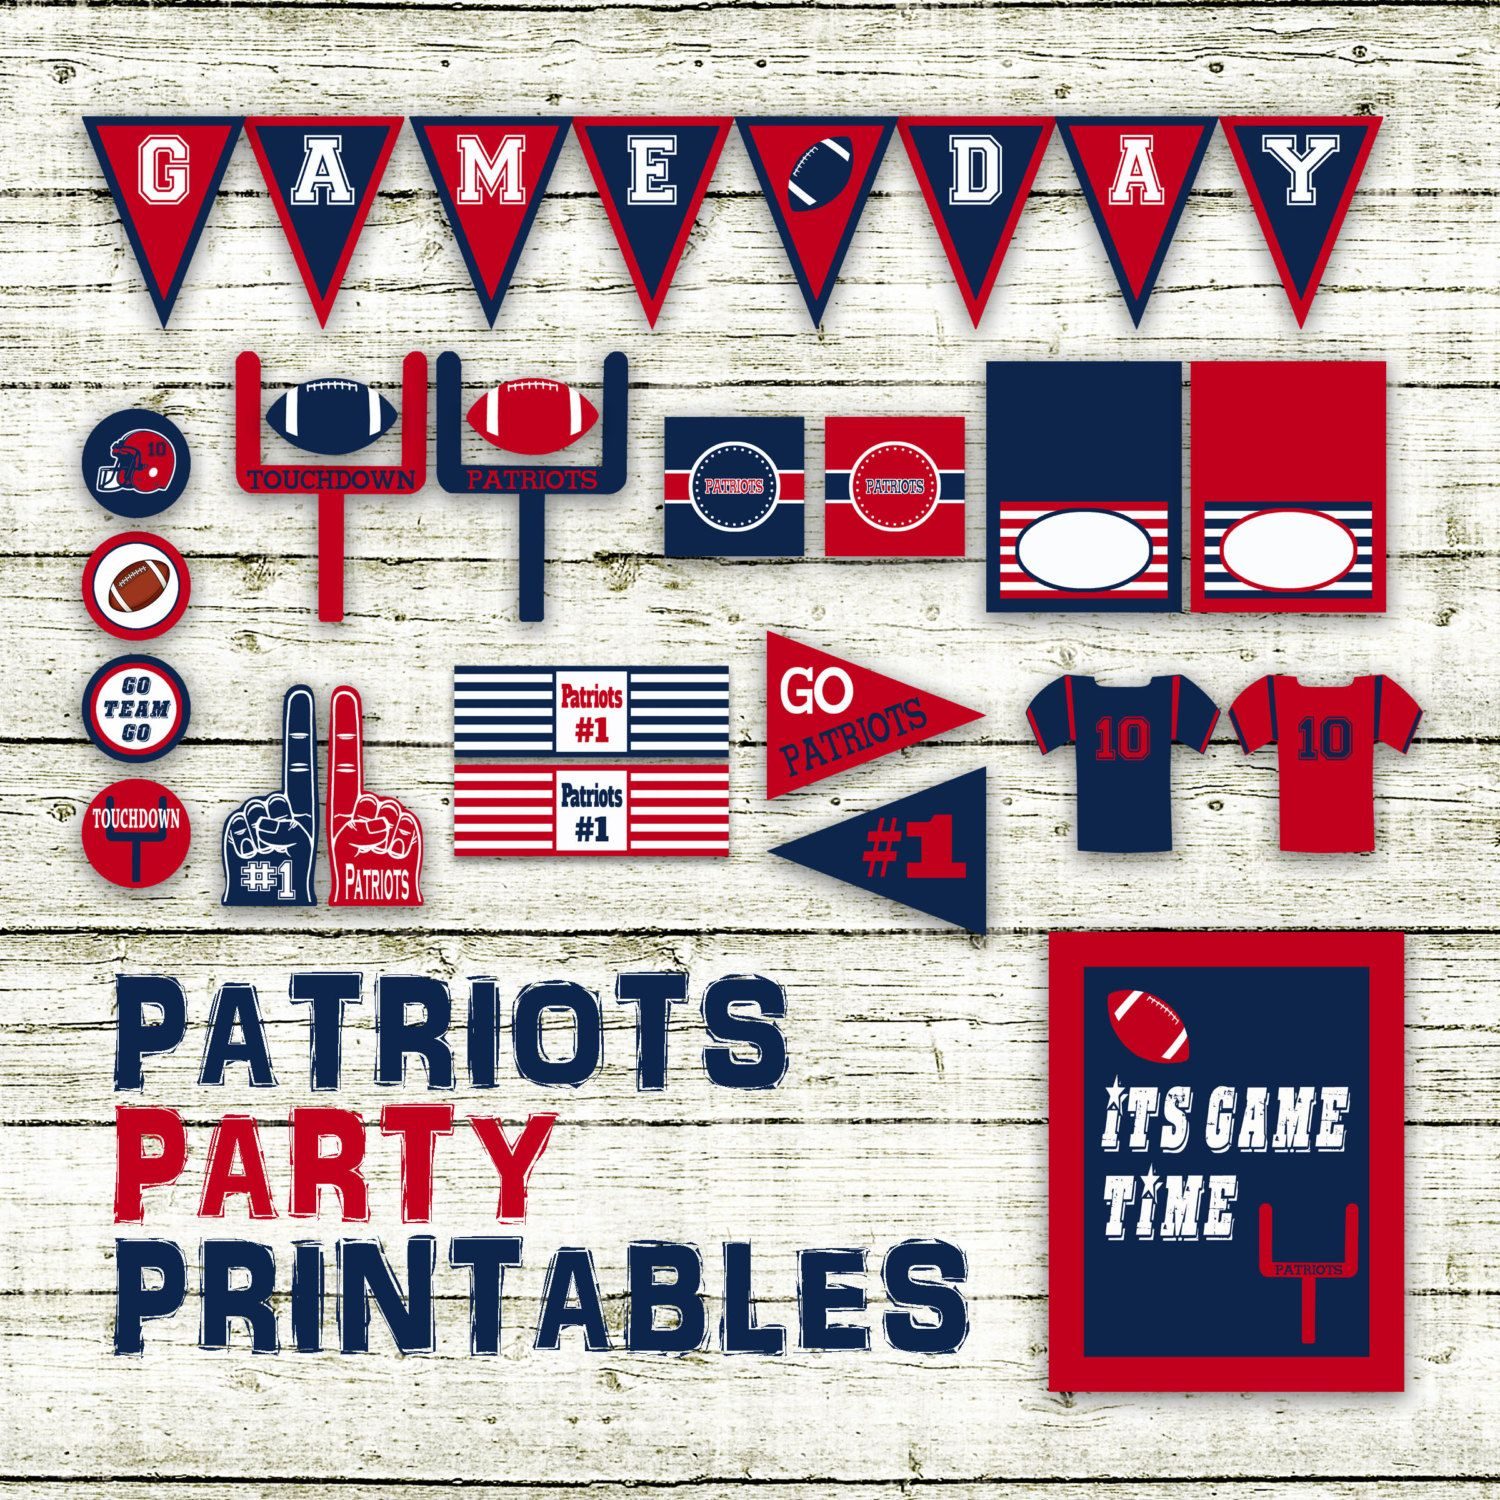 Patriots Football Party Printables And Decorations Printable Patriots Football Party Football Party Printables Football Party